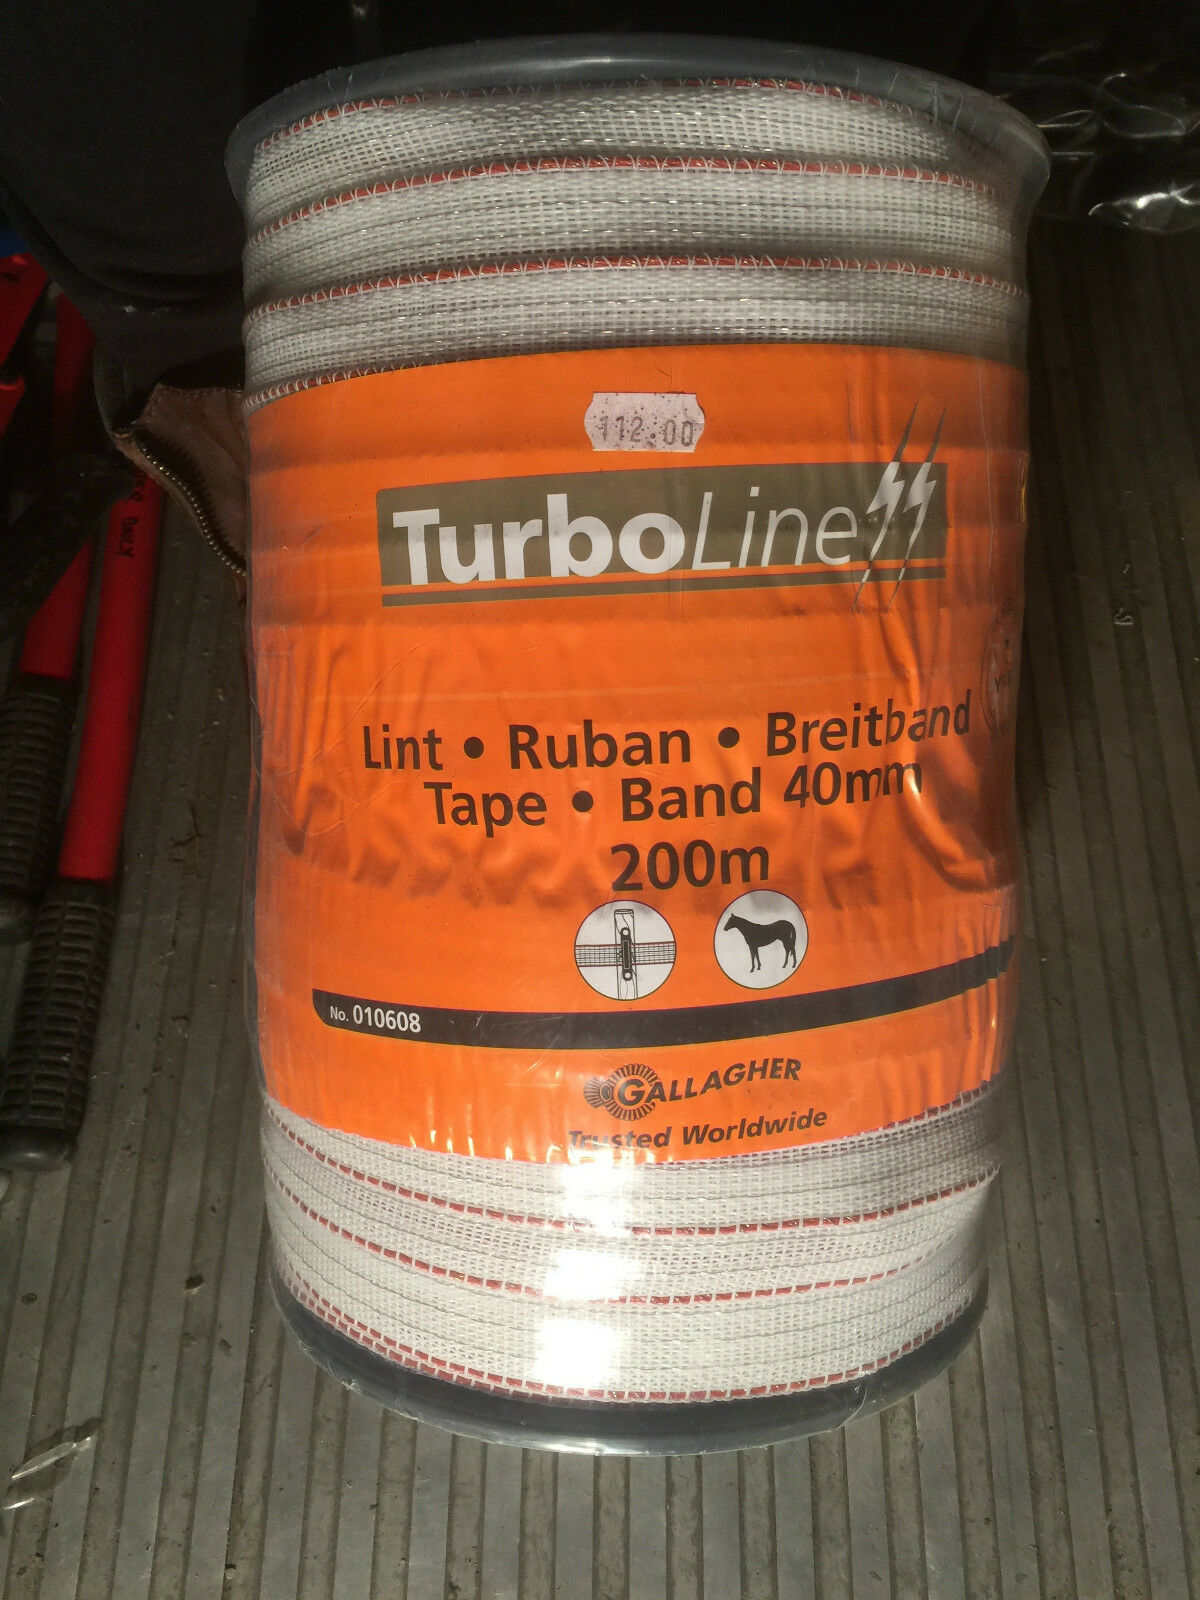 Gallagher Electric Fencing Turbo  Line White 40mm x 200m Roll 010608  sale outlet